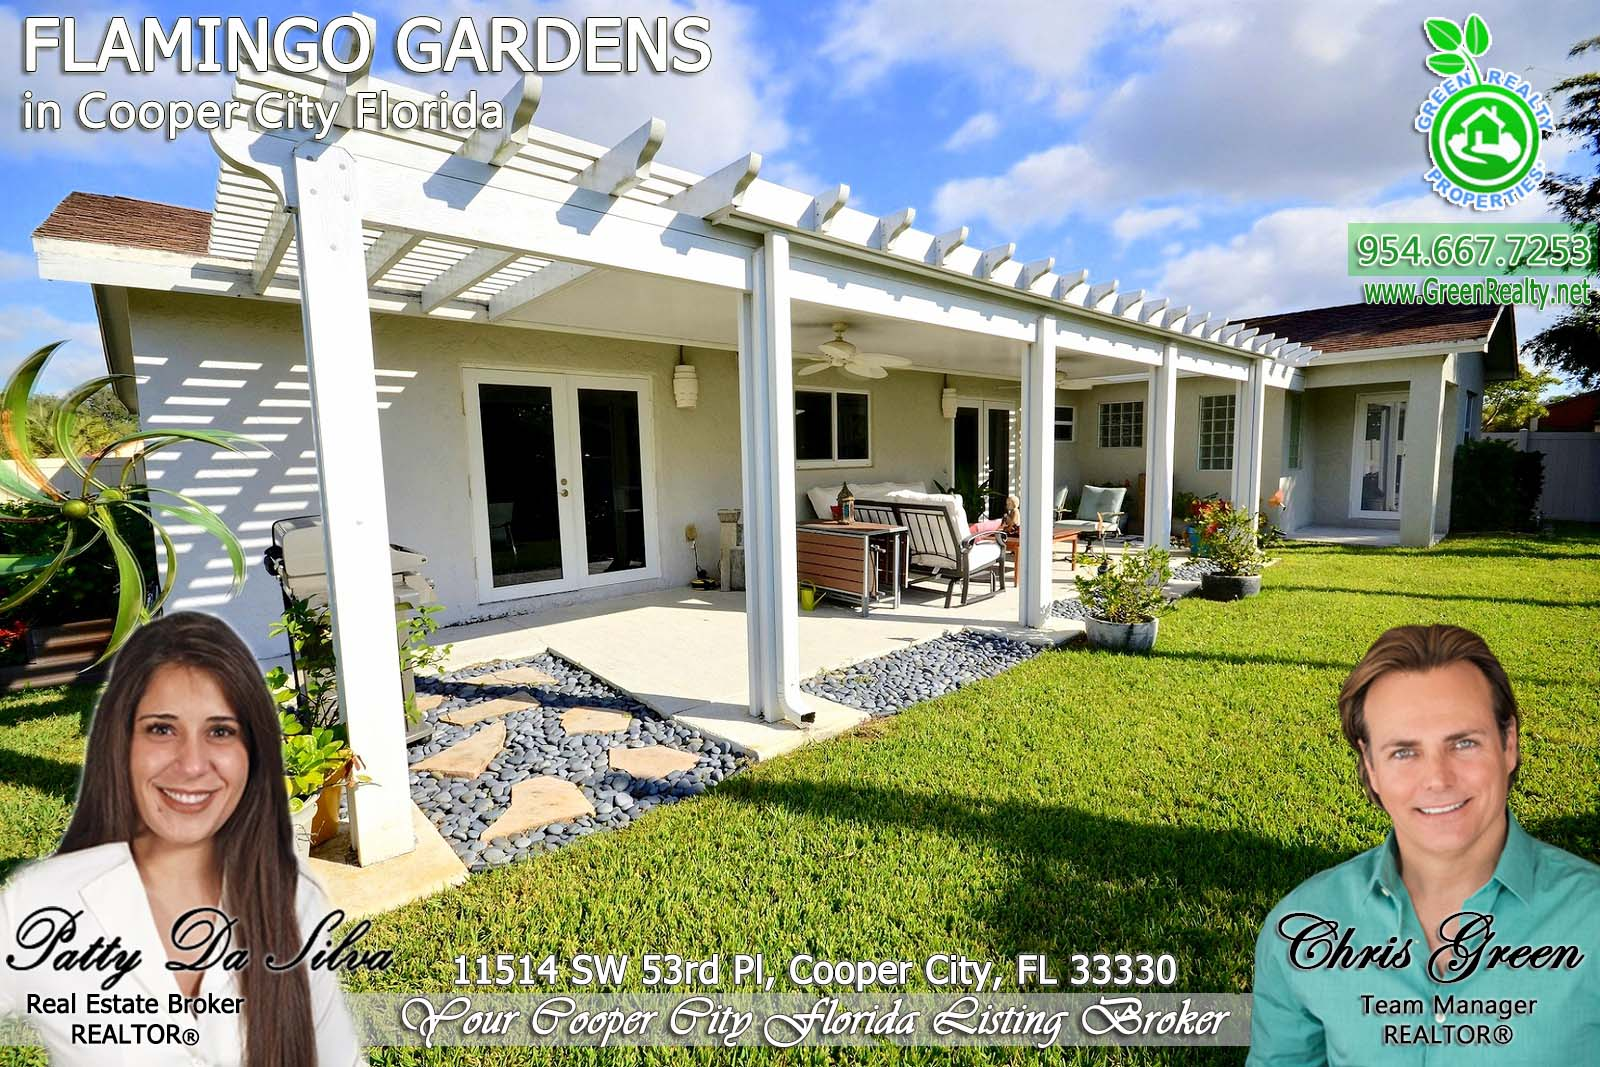 11 Flamingo Gardens Cooper City Homes For Sale (9)